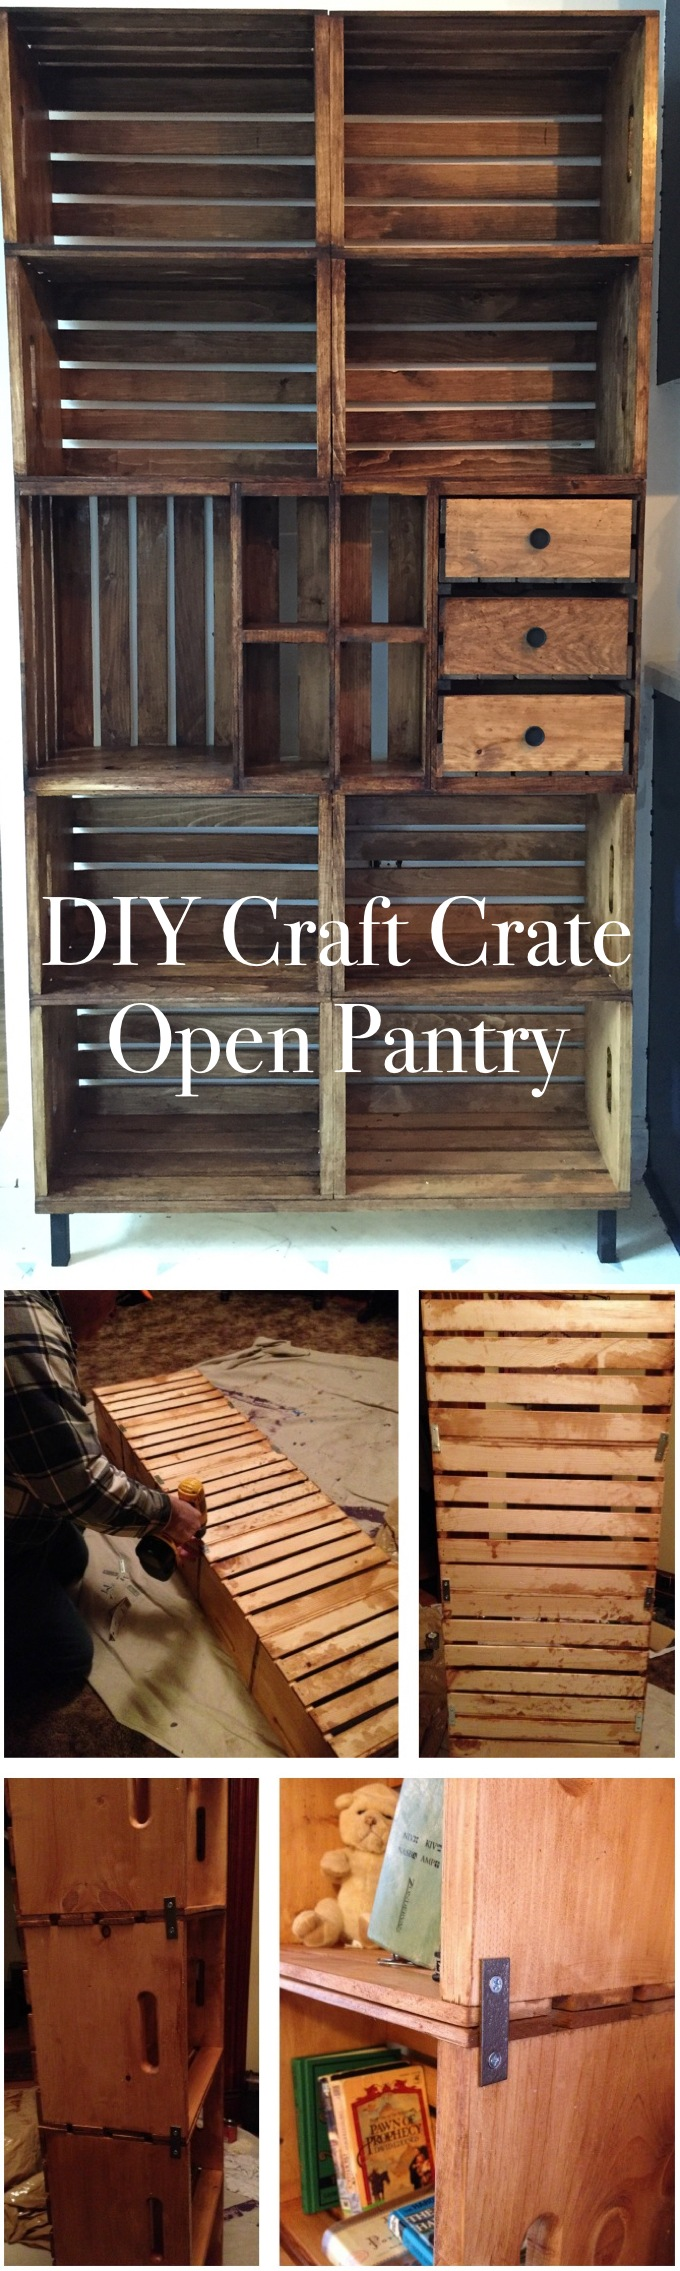 DIY Craft Crate Open Pantry